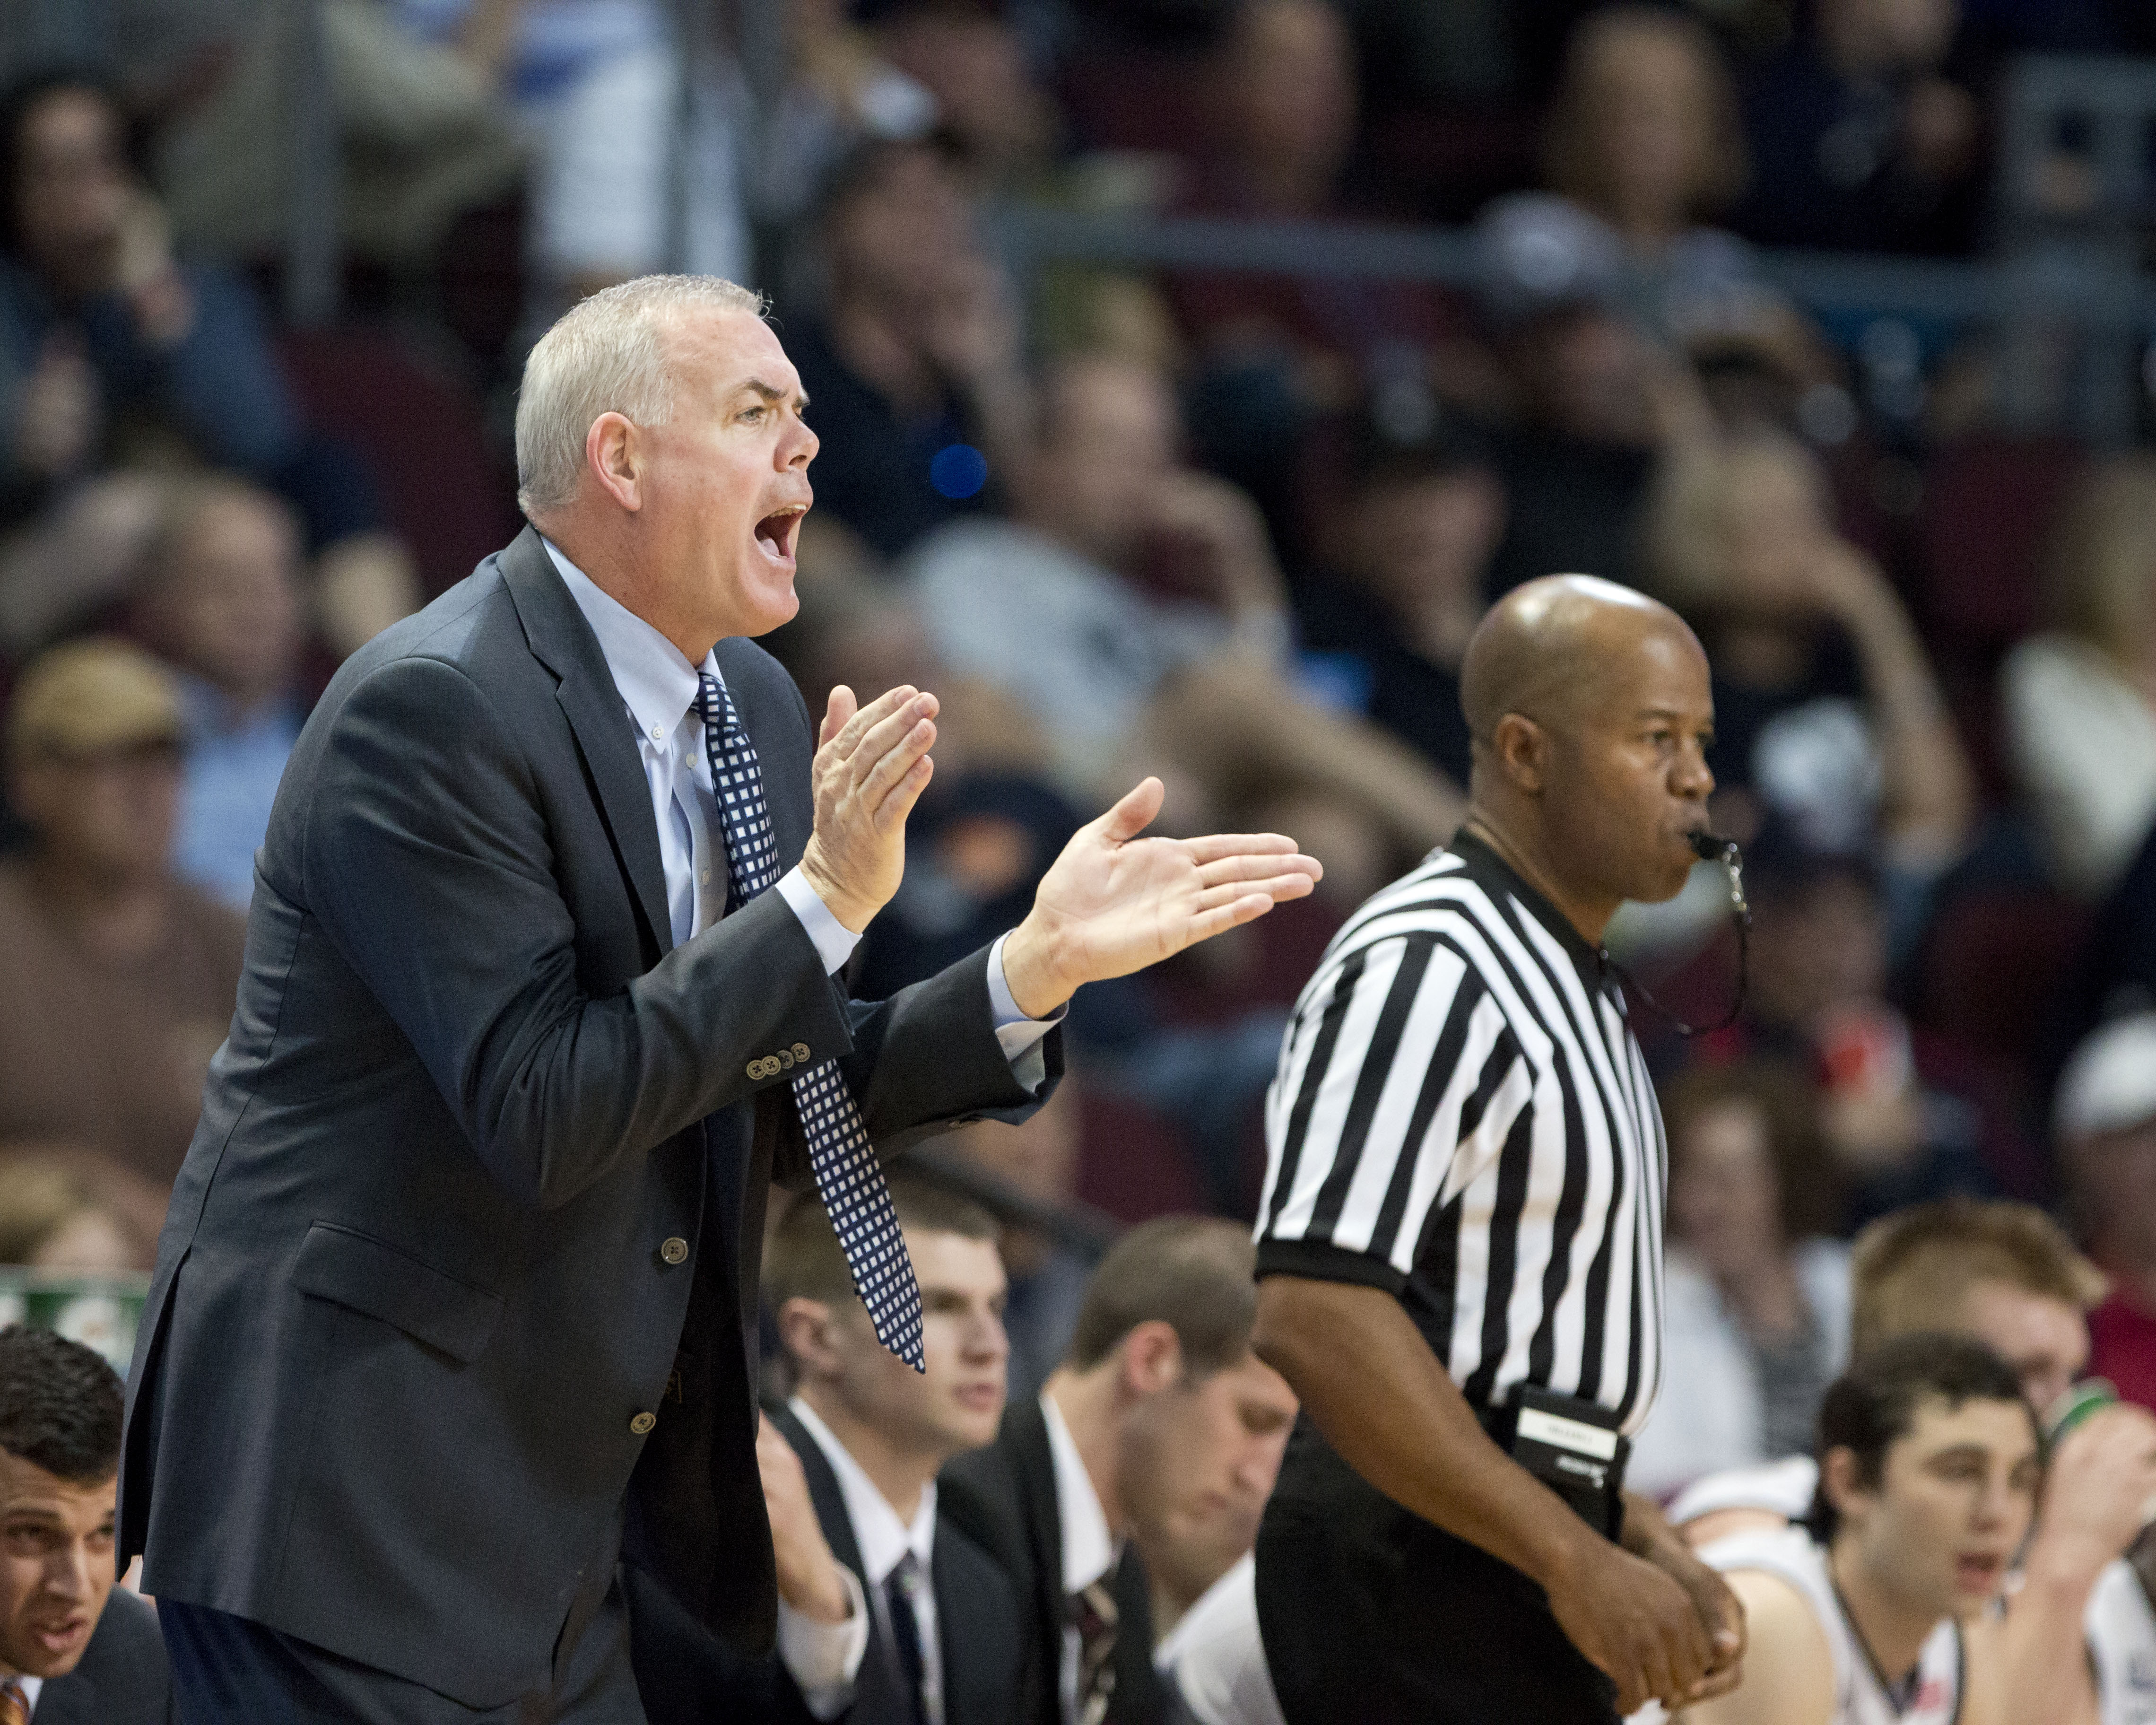 Dave Rose coaches BYU to their quarterfinal win at the WCC tournament, beating off LMU.